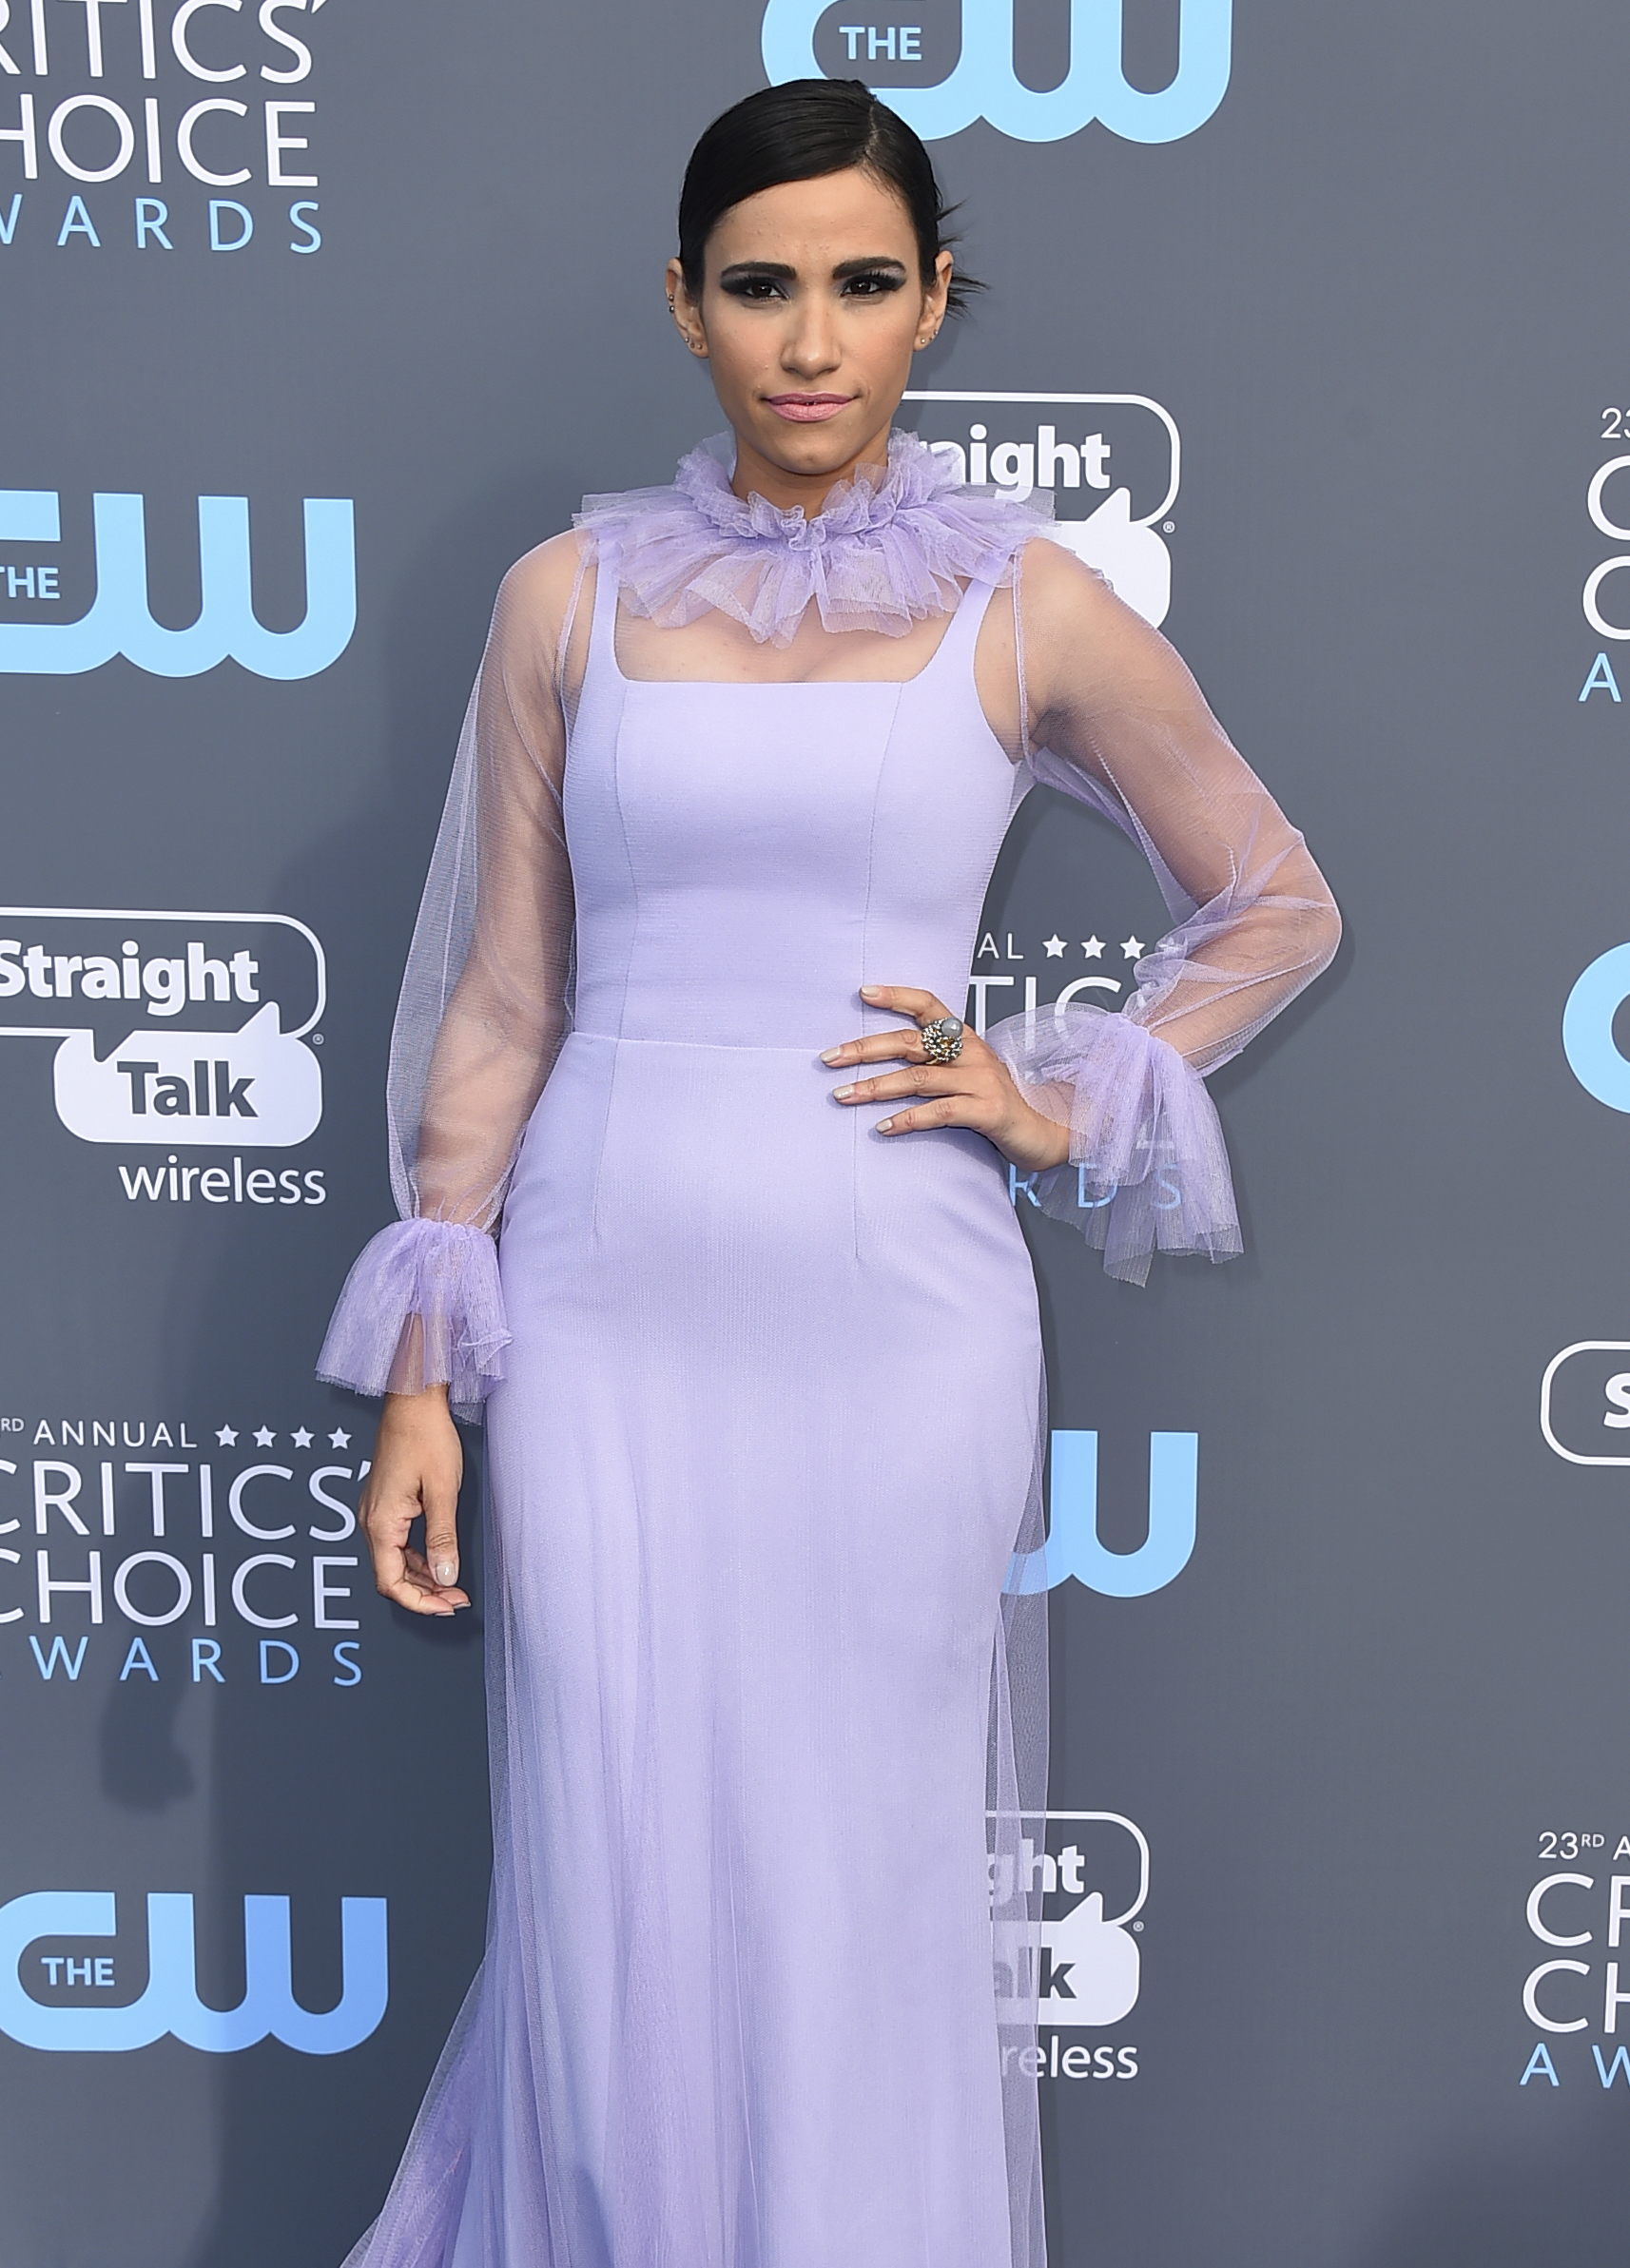 <div class='meta'><div class='origin-logo' data-origin='AP'></div><span class='caption-text' data-credit='Jordan Strauss/Invision/AP'>Tiffany Smith arrives at the 23rd annual Critics' Choice Awards at the Barker Hangar on Thursday, Jan. 11, 2018, in Santa Monica, Calif.</span></div>